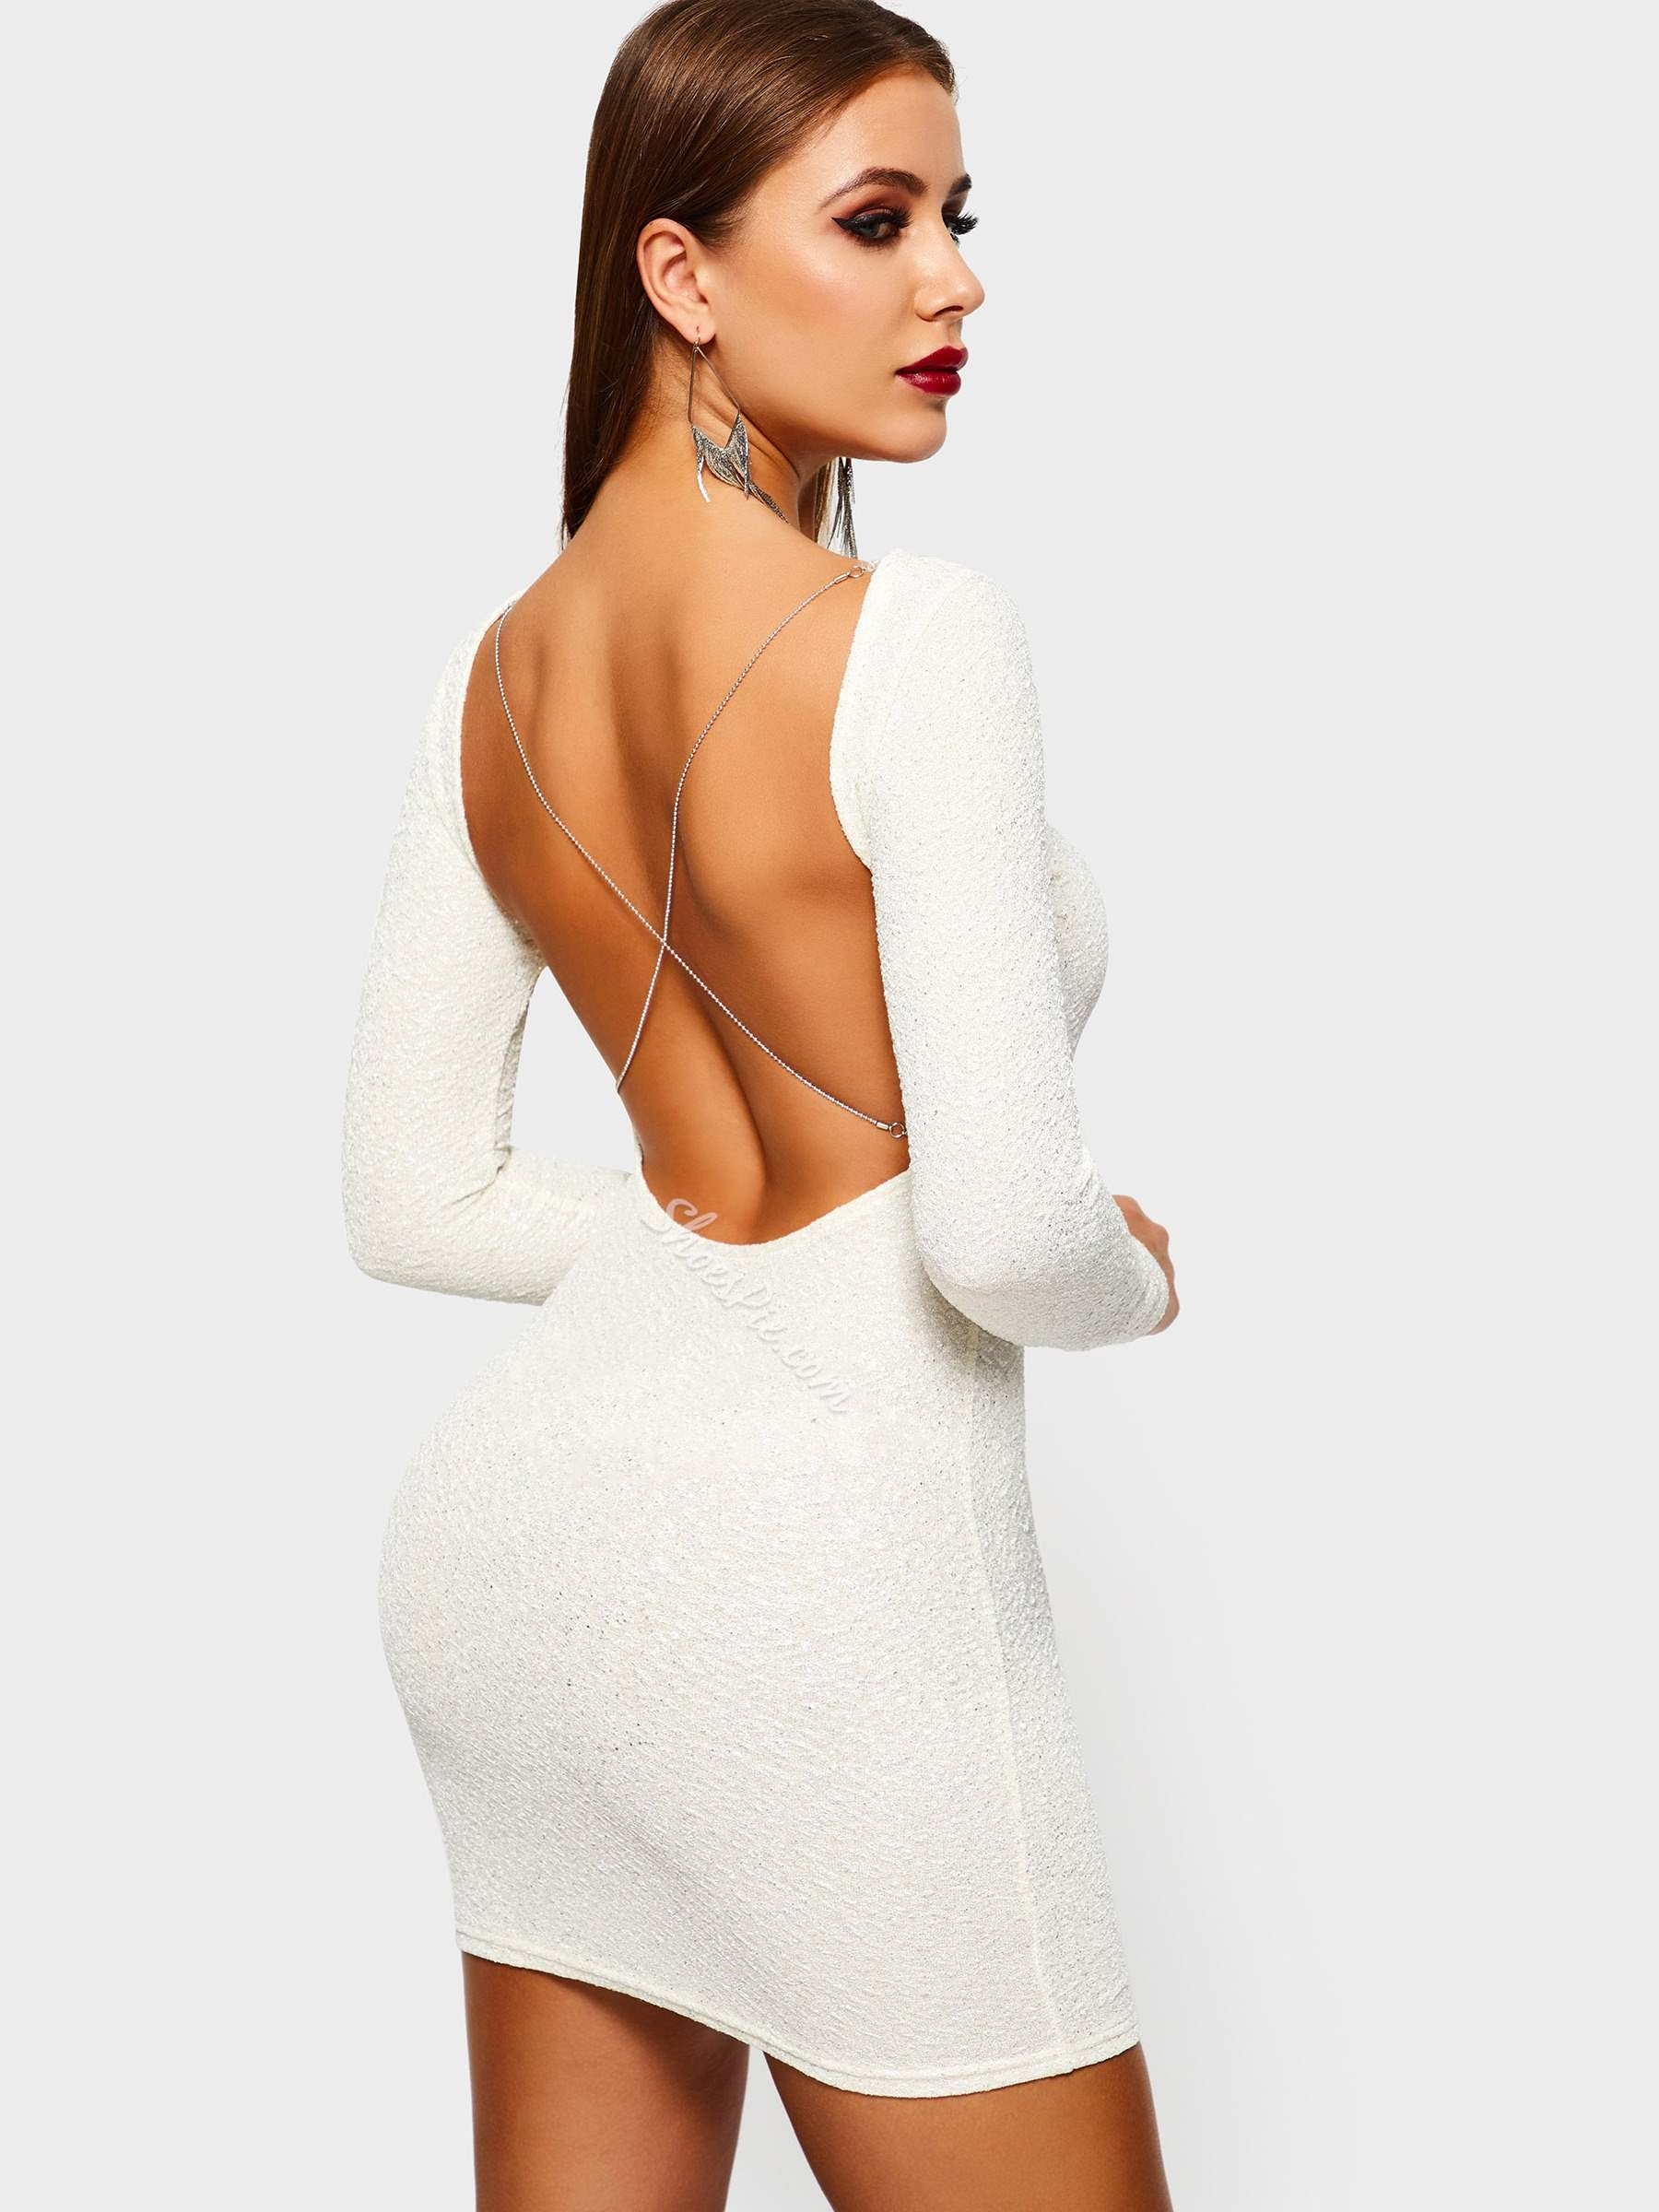 Long Sleeve Sequins Backless Women's Bodycon Dress